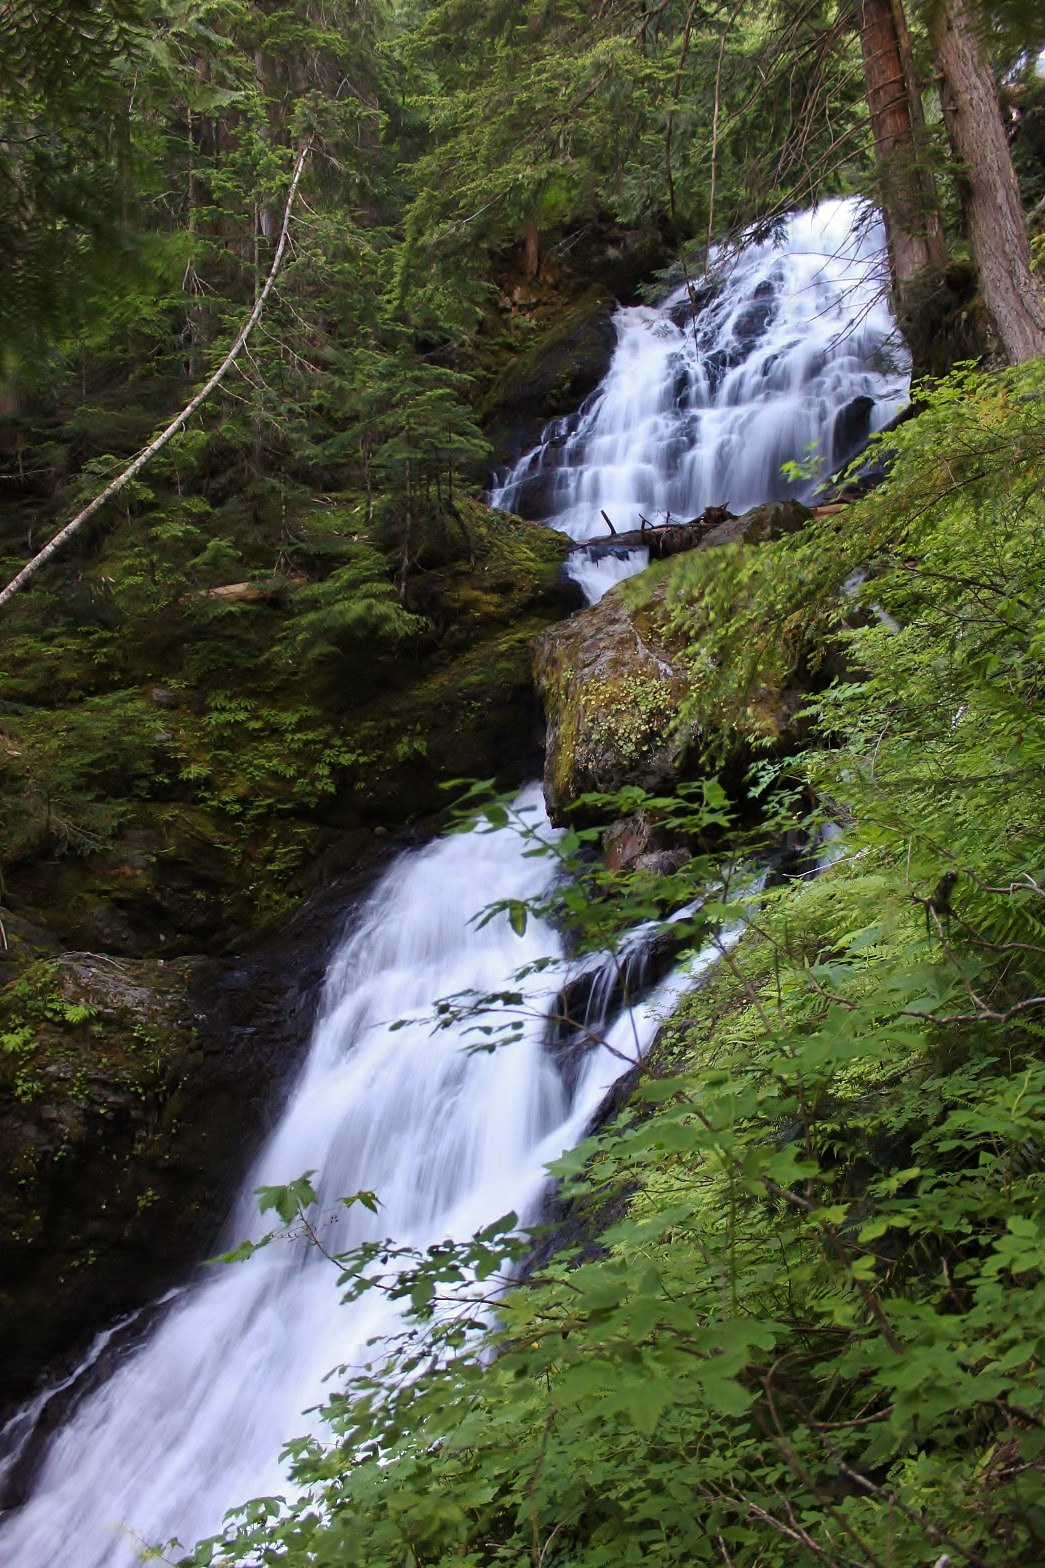 Middle Section of Gold Run Falls